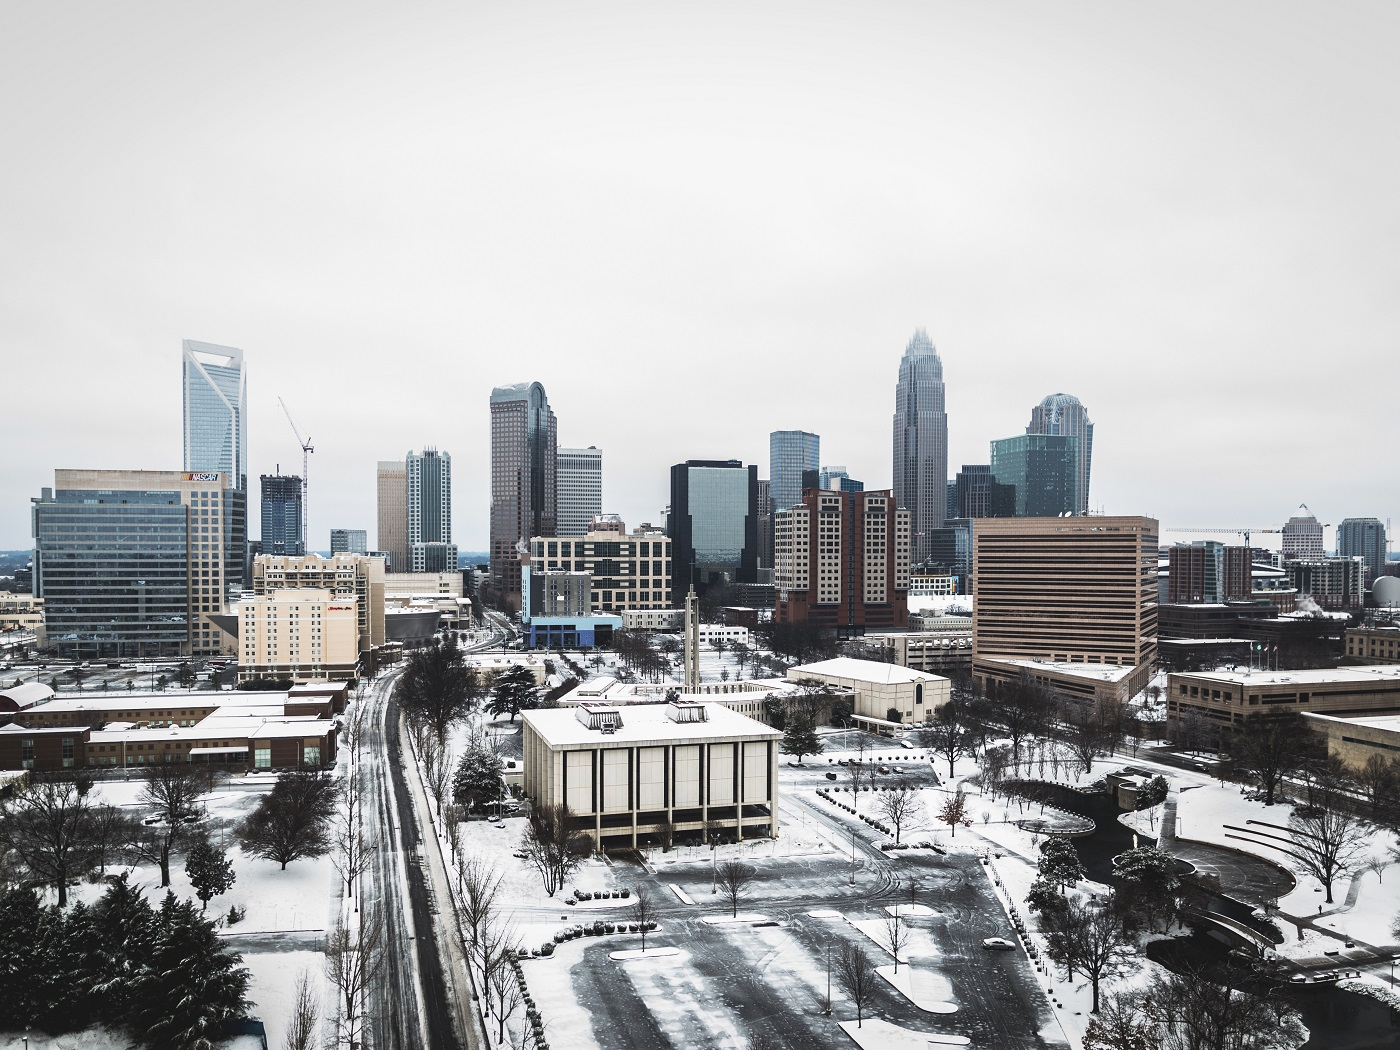 Snow in CLT